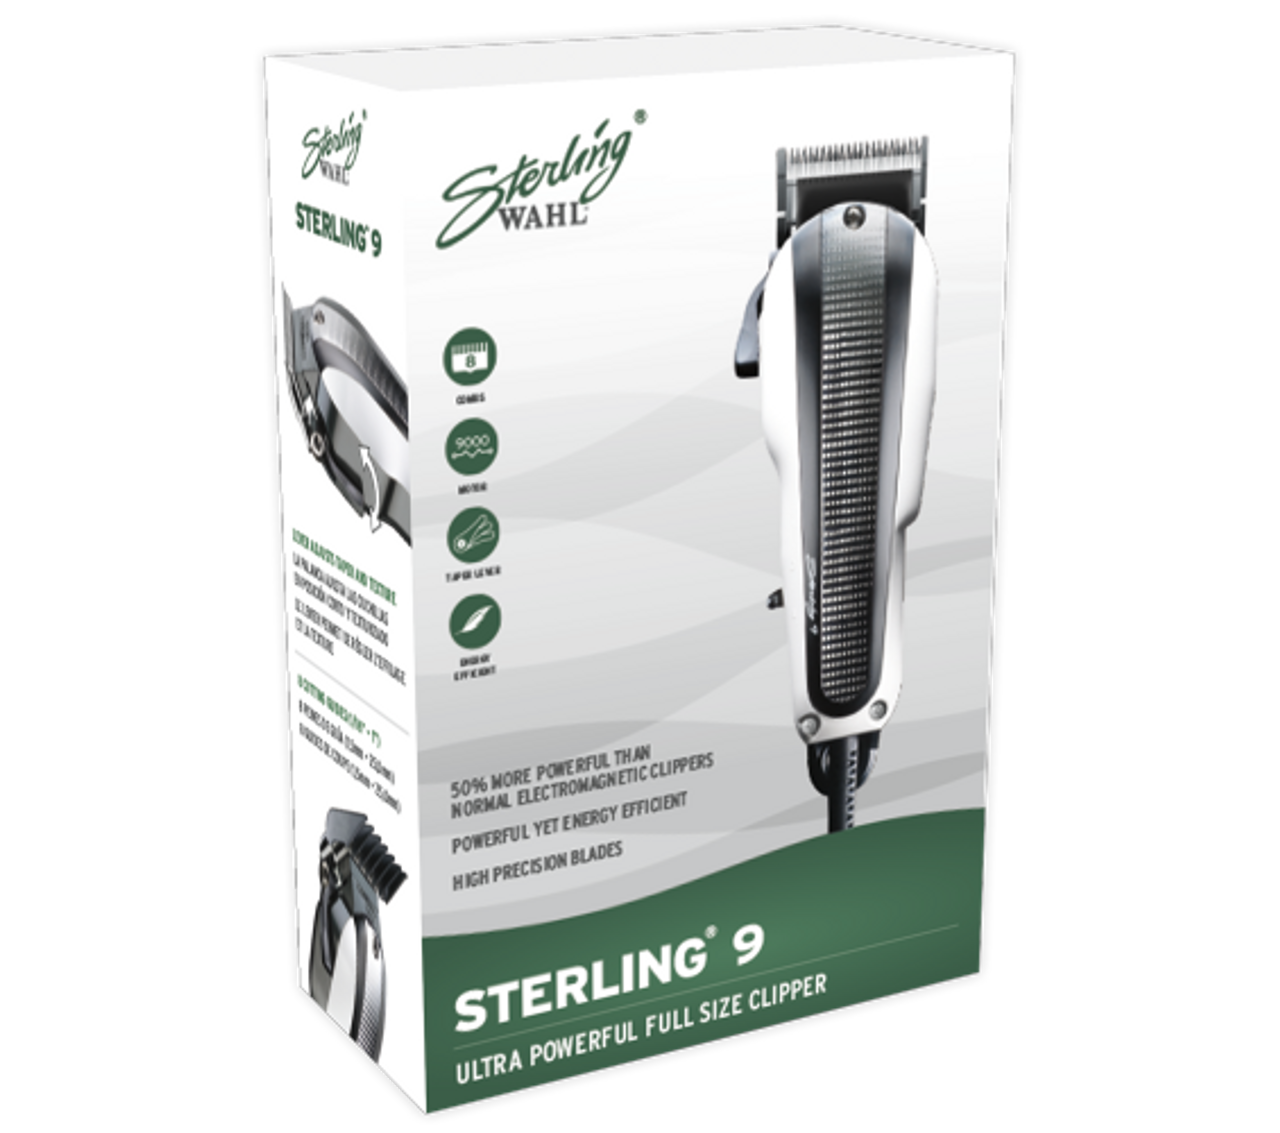 Wahl Sterling 9 Clipper